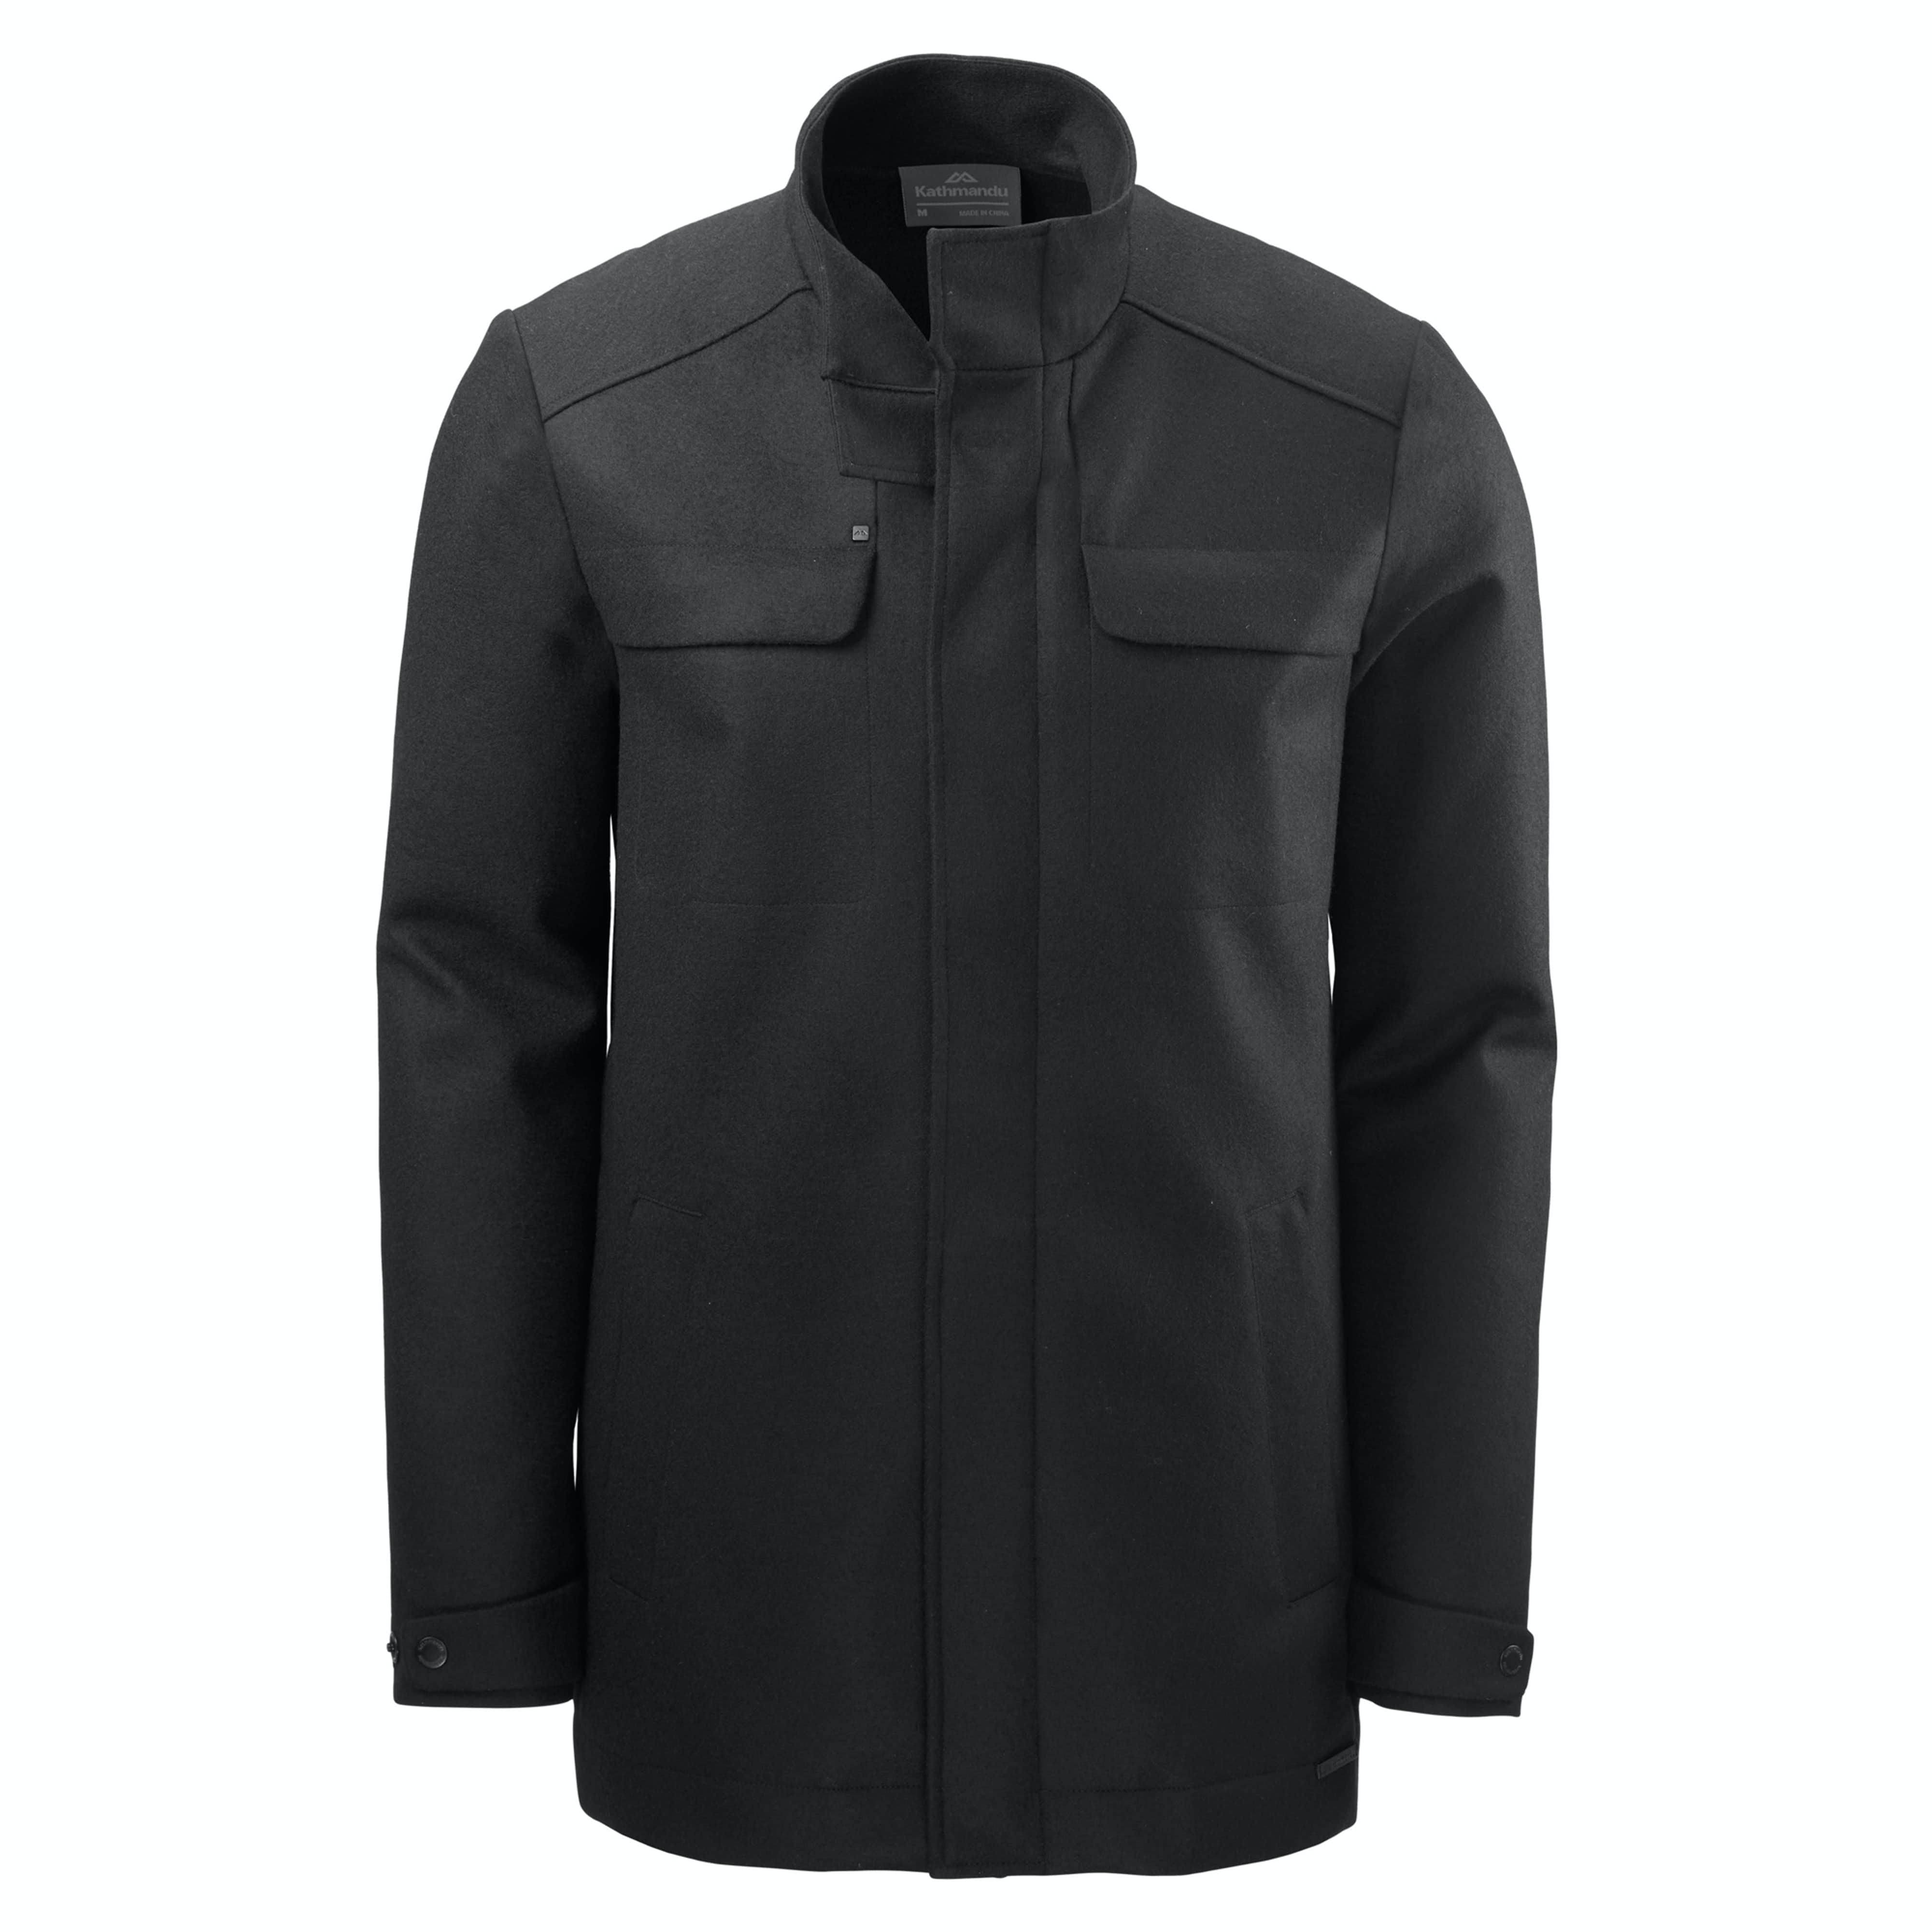 a42c2aebc Mens Jackets for Sale Online